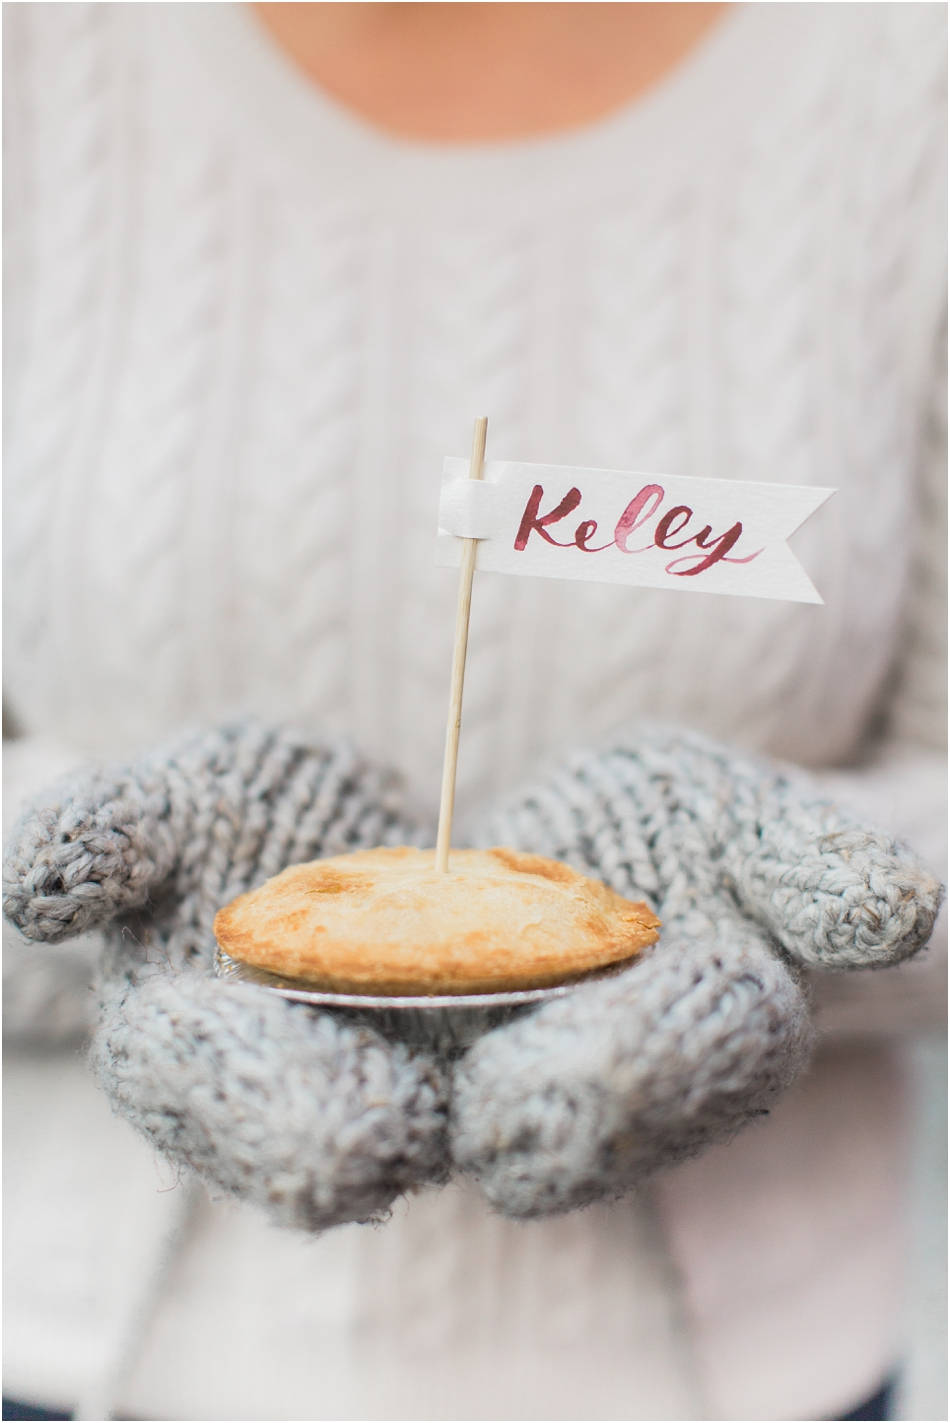 fall_thanksgiving_friendsgiving_cocktails_florals_kelly_golia_kate_murtaugh_wool_whiskey_cape_cod_boston_new_england_wedding_photographer_Meredith_Jane_Photography_photo_0238.jpg